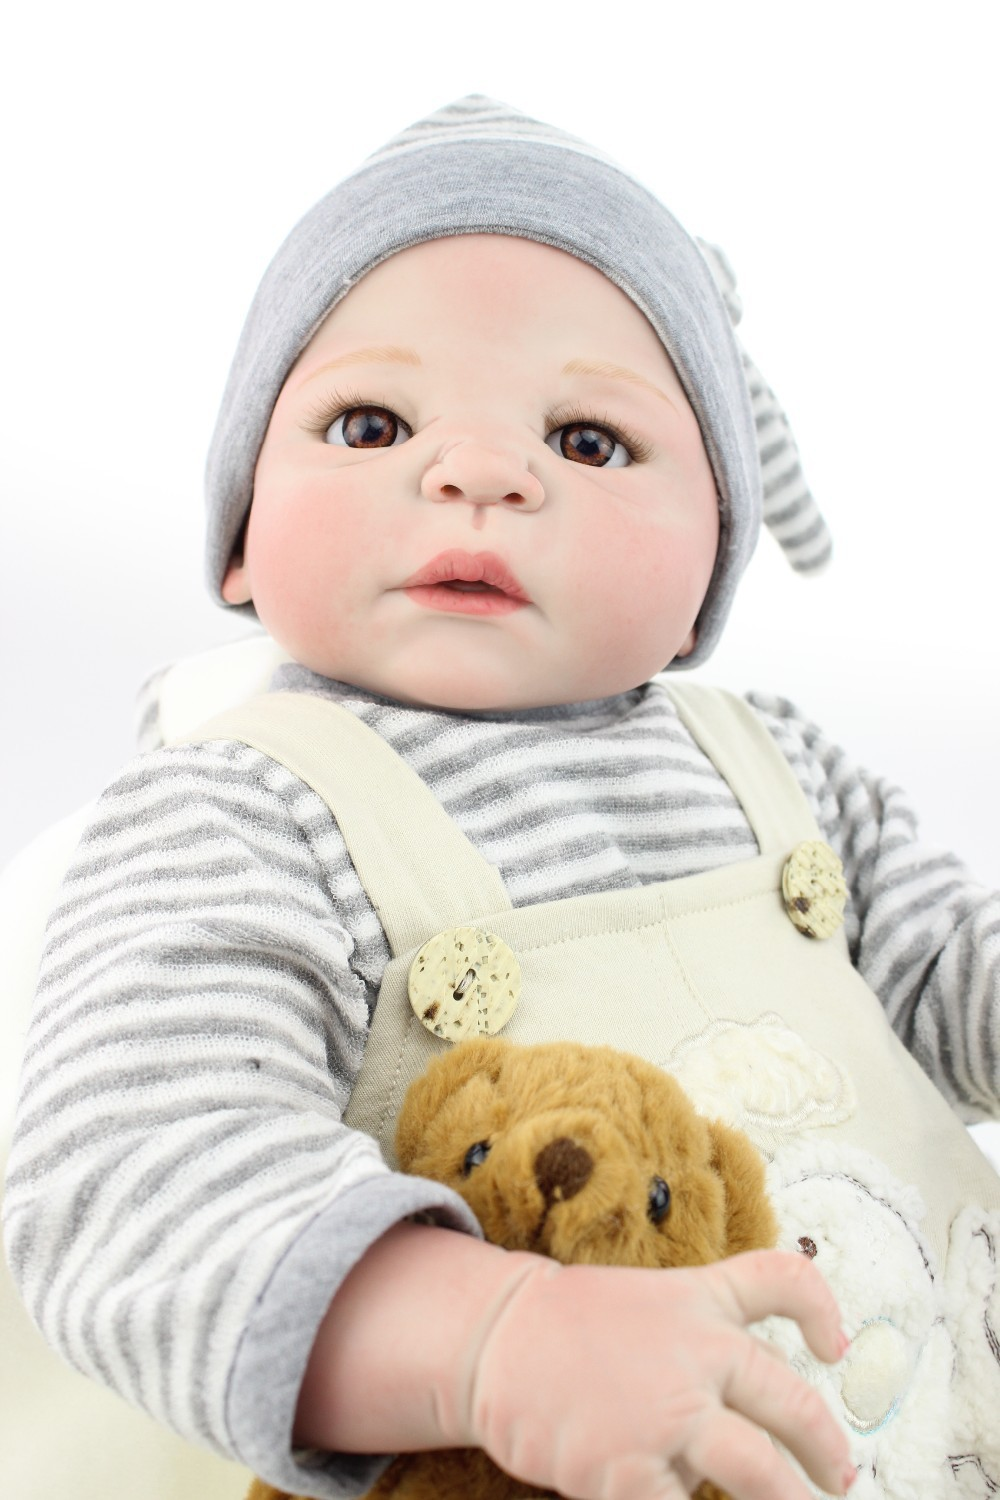 55cm Full Silicone Reborn Baby Boy Doll Toy Vinyl Newborn Babies Bebe Reborn Doll Girls Bonecas Birthday Gift Present Bathe Toy full silicone body reborn baby doll toys lifelike 55cm newborn boy babies dolls for kids fashion birthday present bathe toy